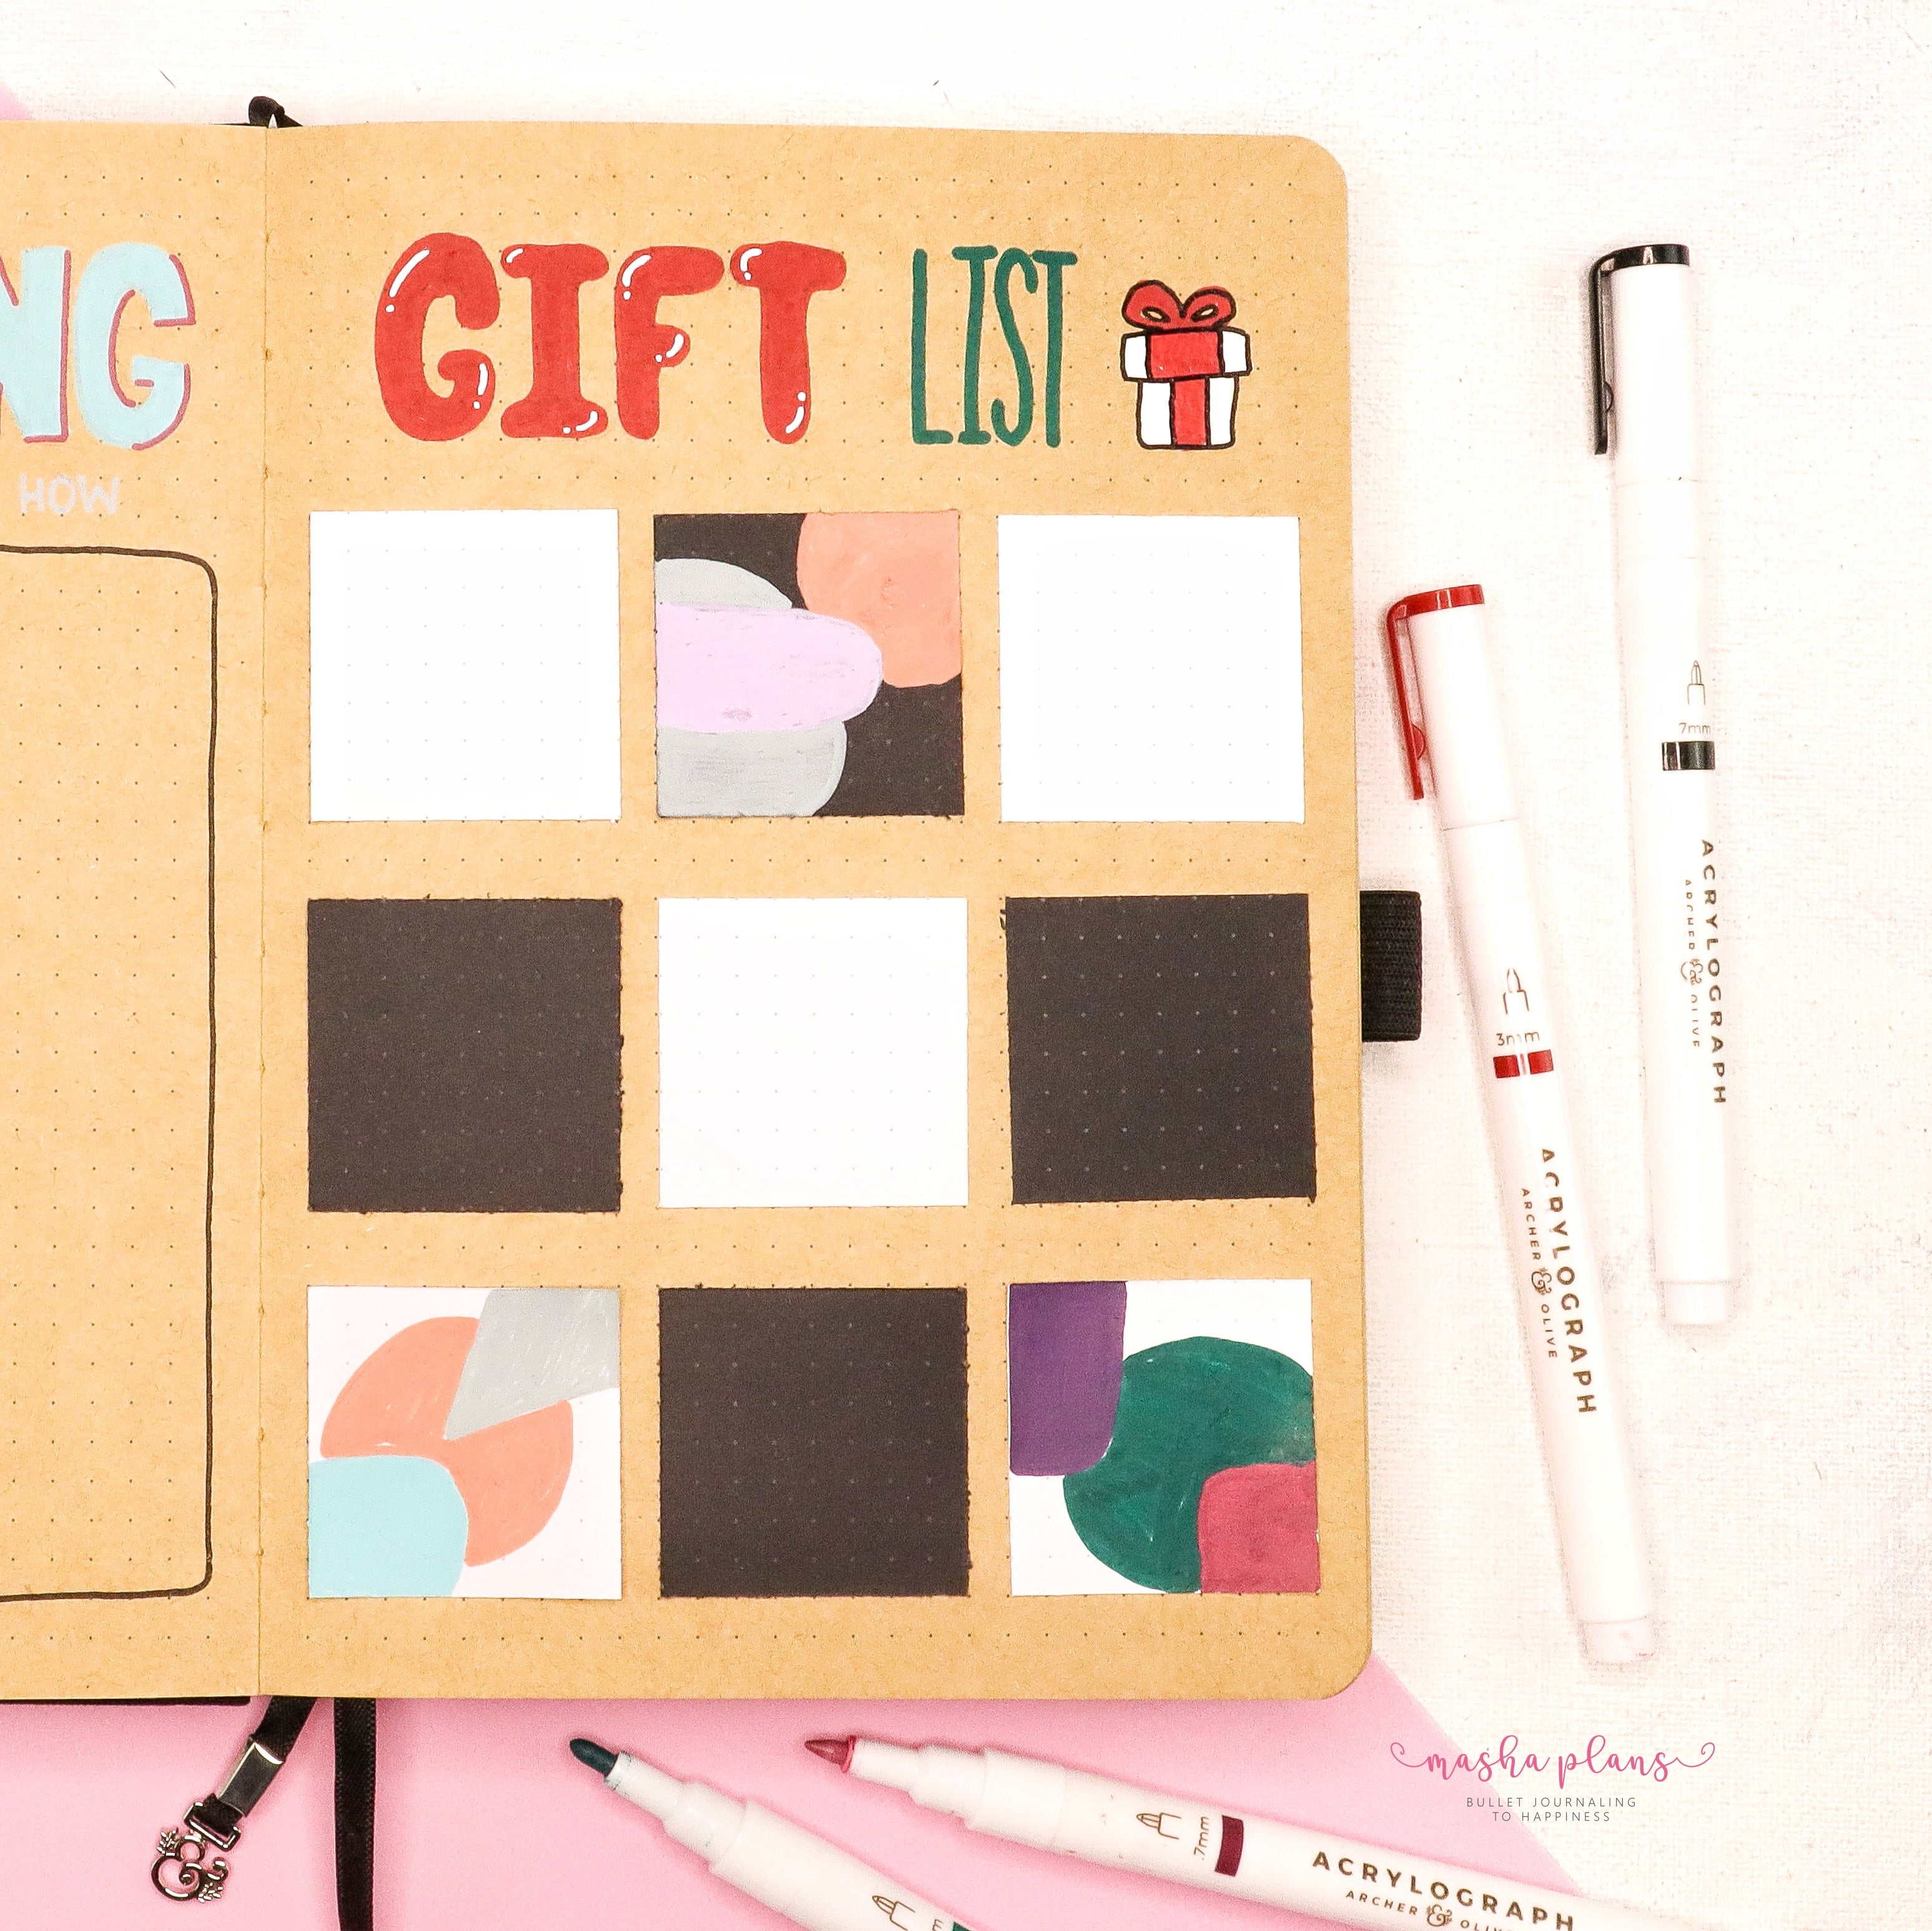 gift ideas, masha plans, kraft journal, acrylograph pens, archer and olive